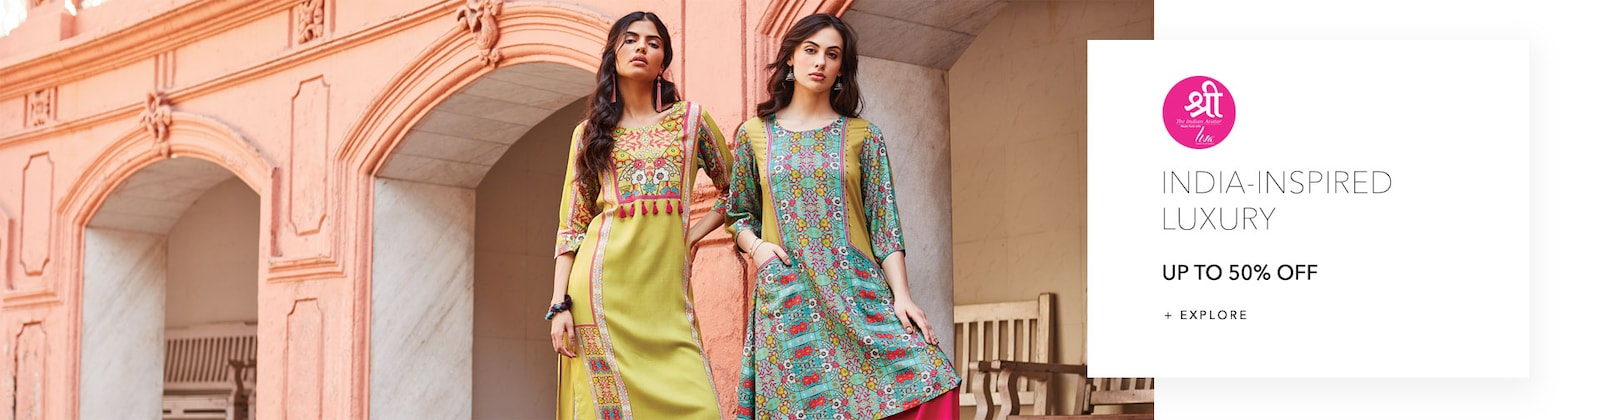 Shree - Buy Shree Dresses For Women Online